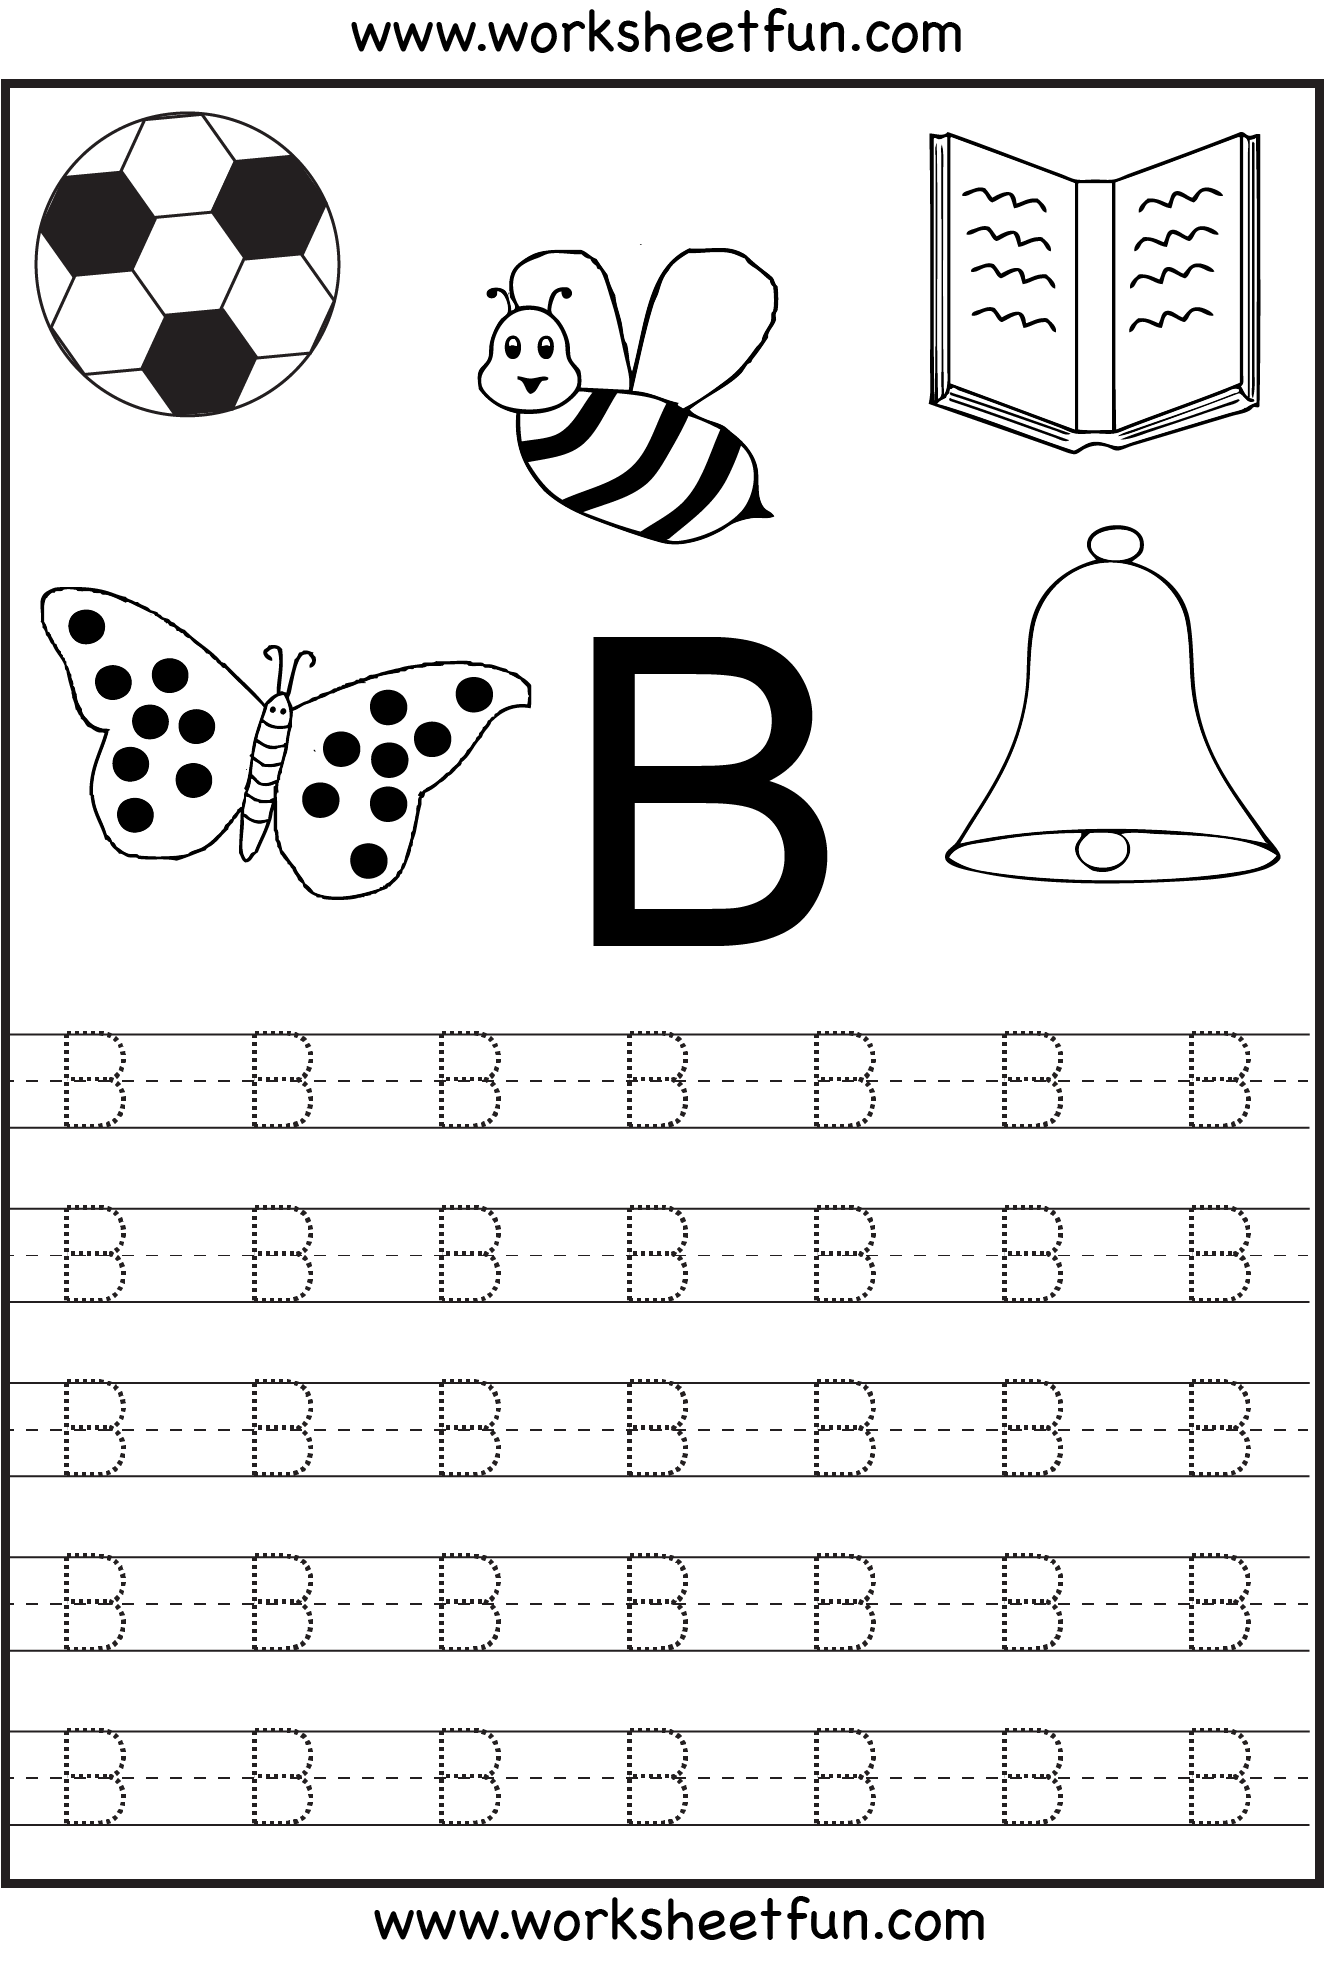 Letter Printable Images Gallery Category Page 38